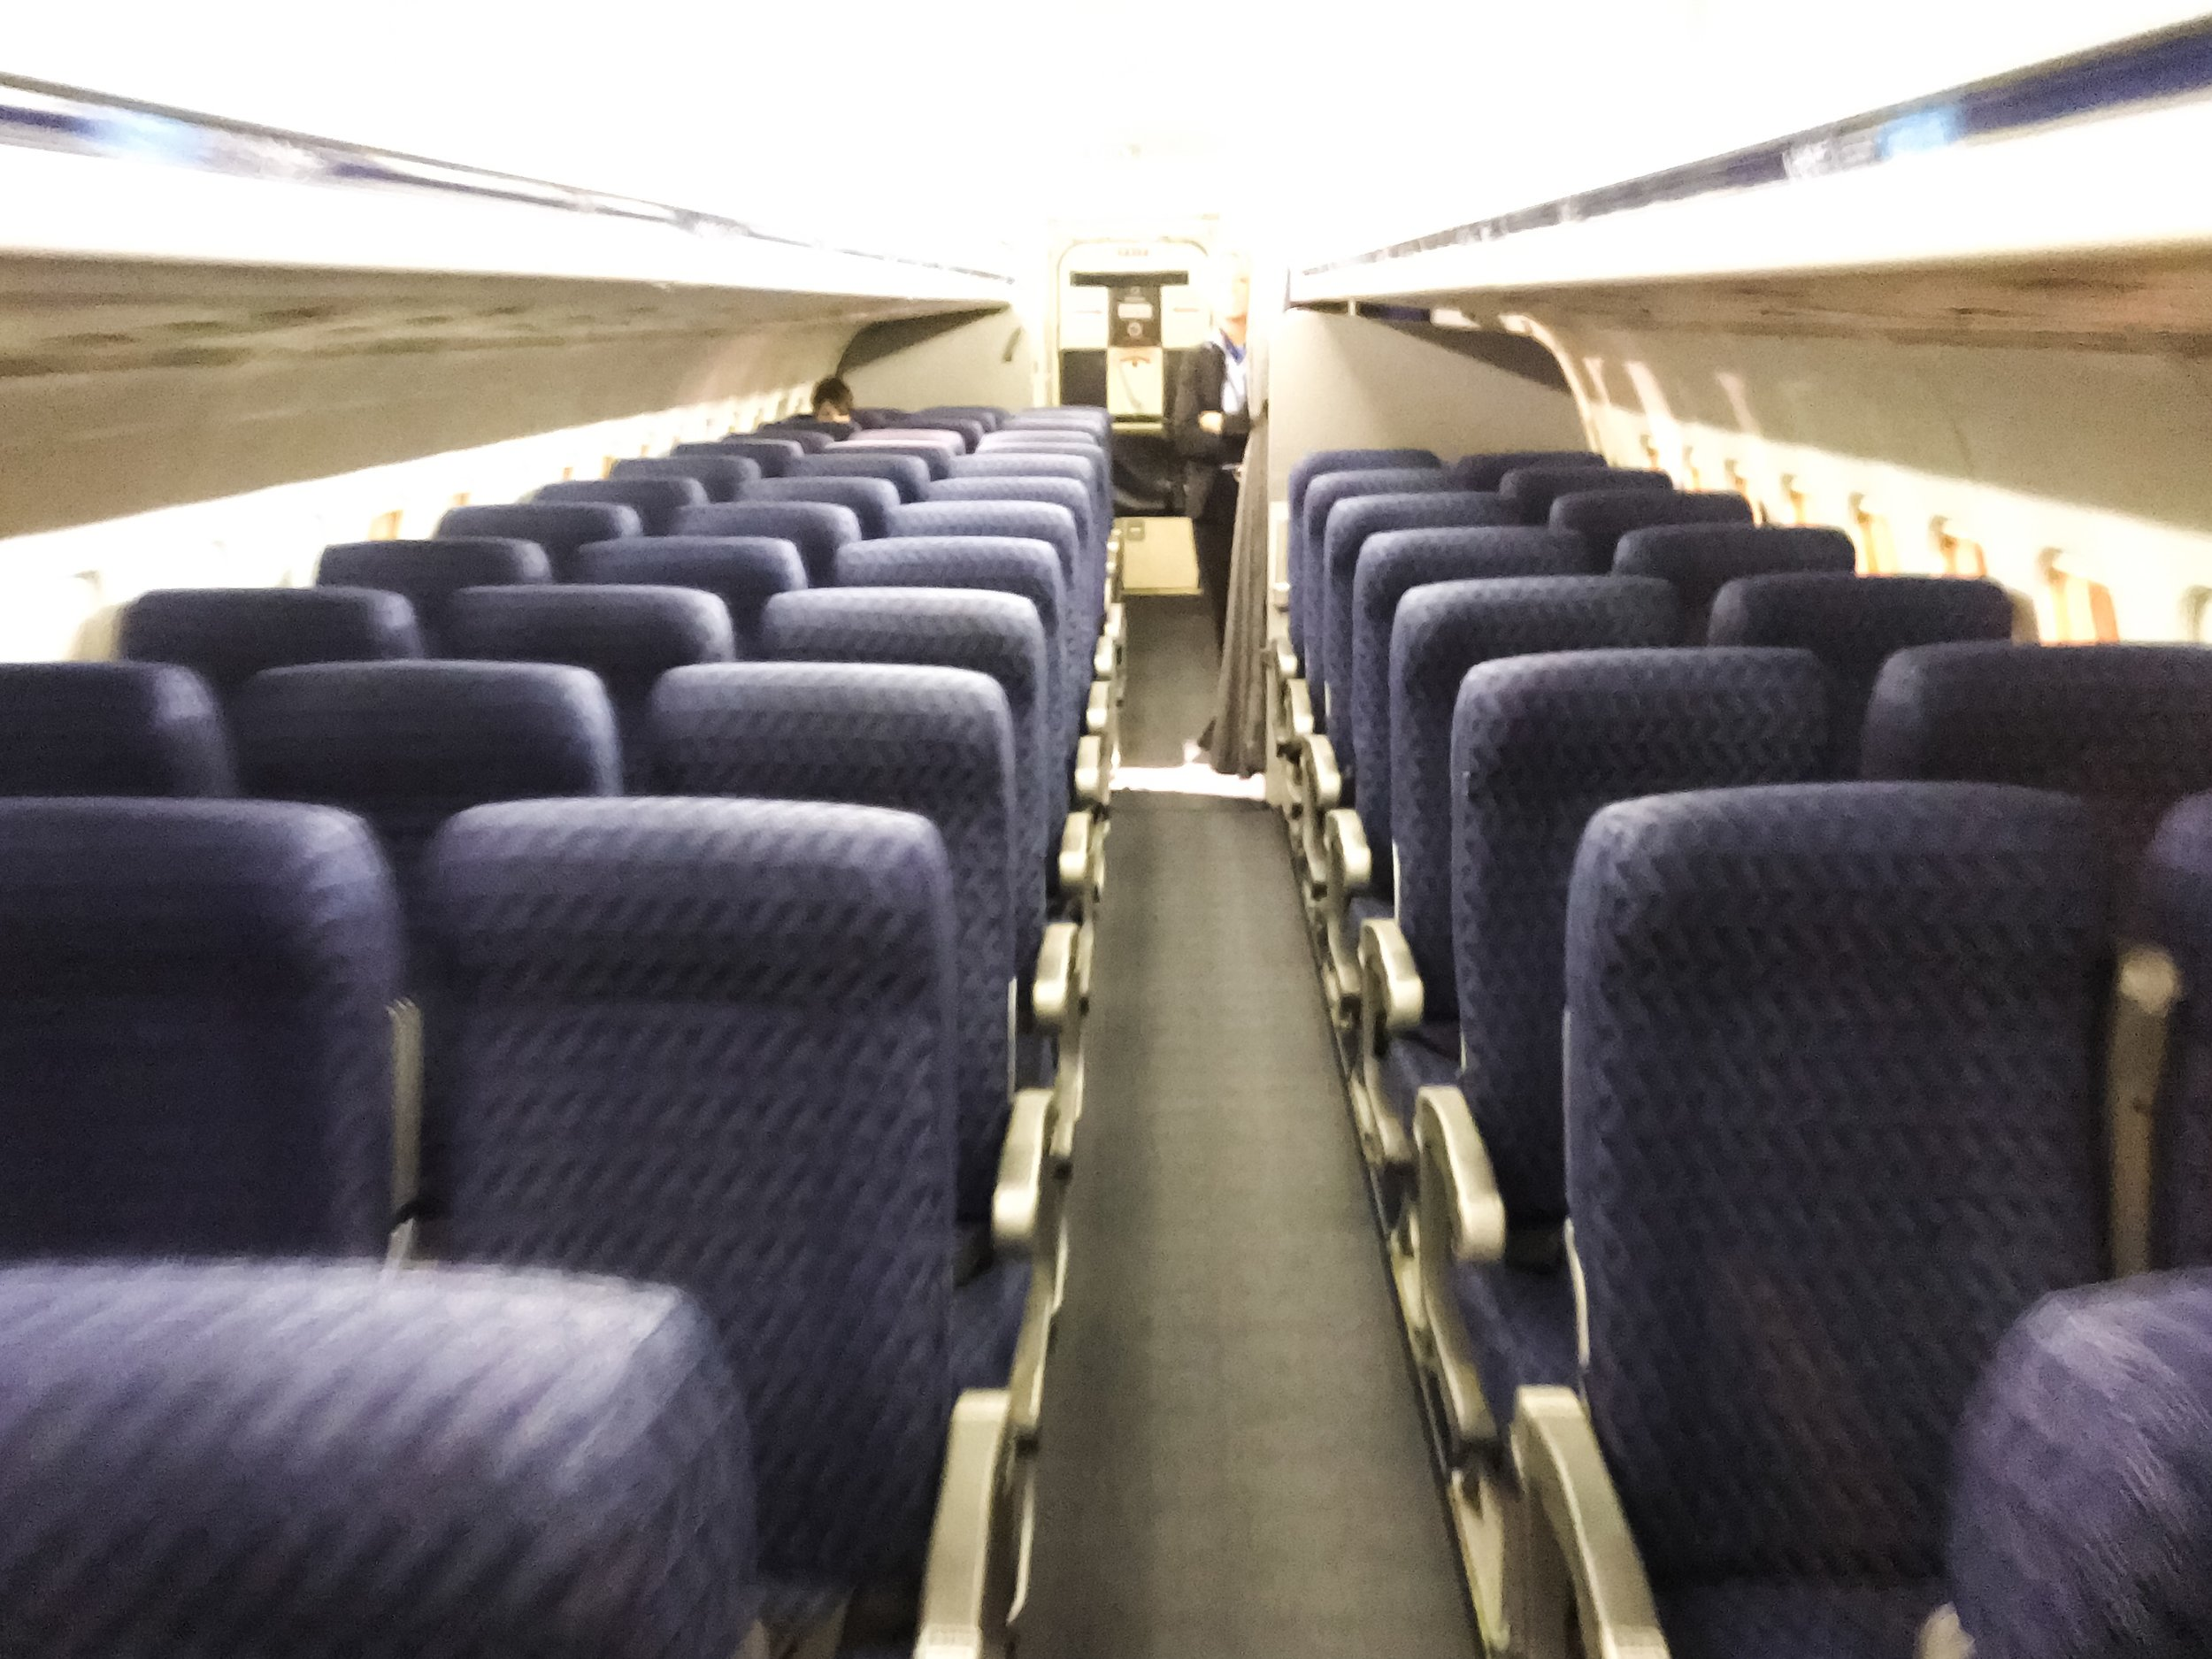 While most passengers won't miss the MD-80 itself, the 2x3 seating layout was always a fan favorite.